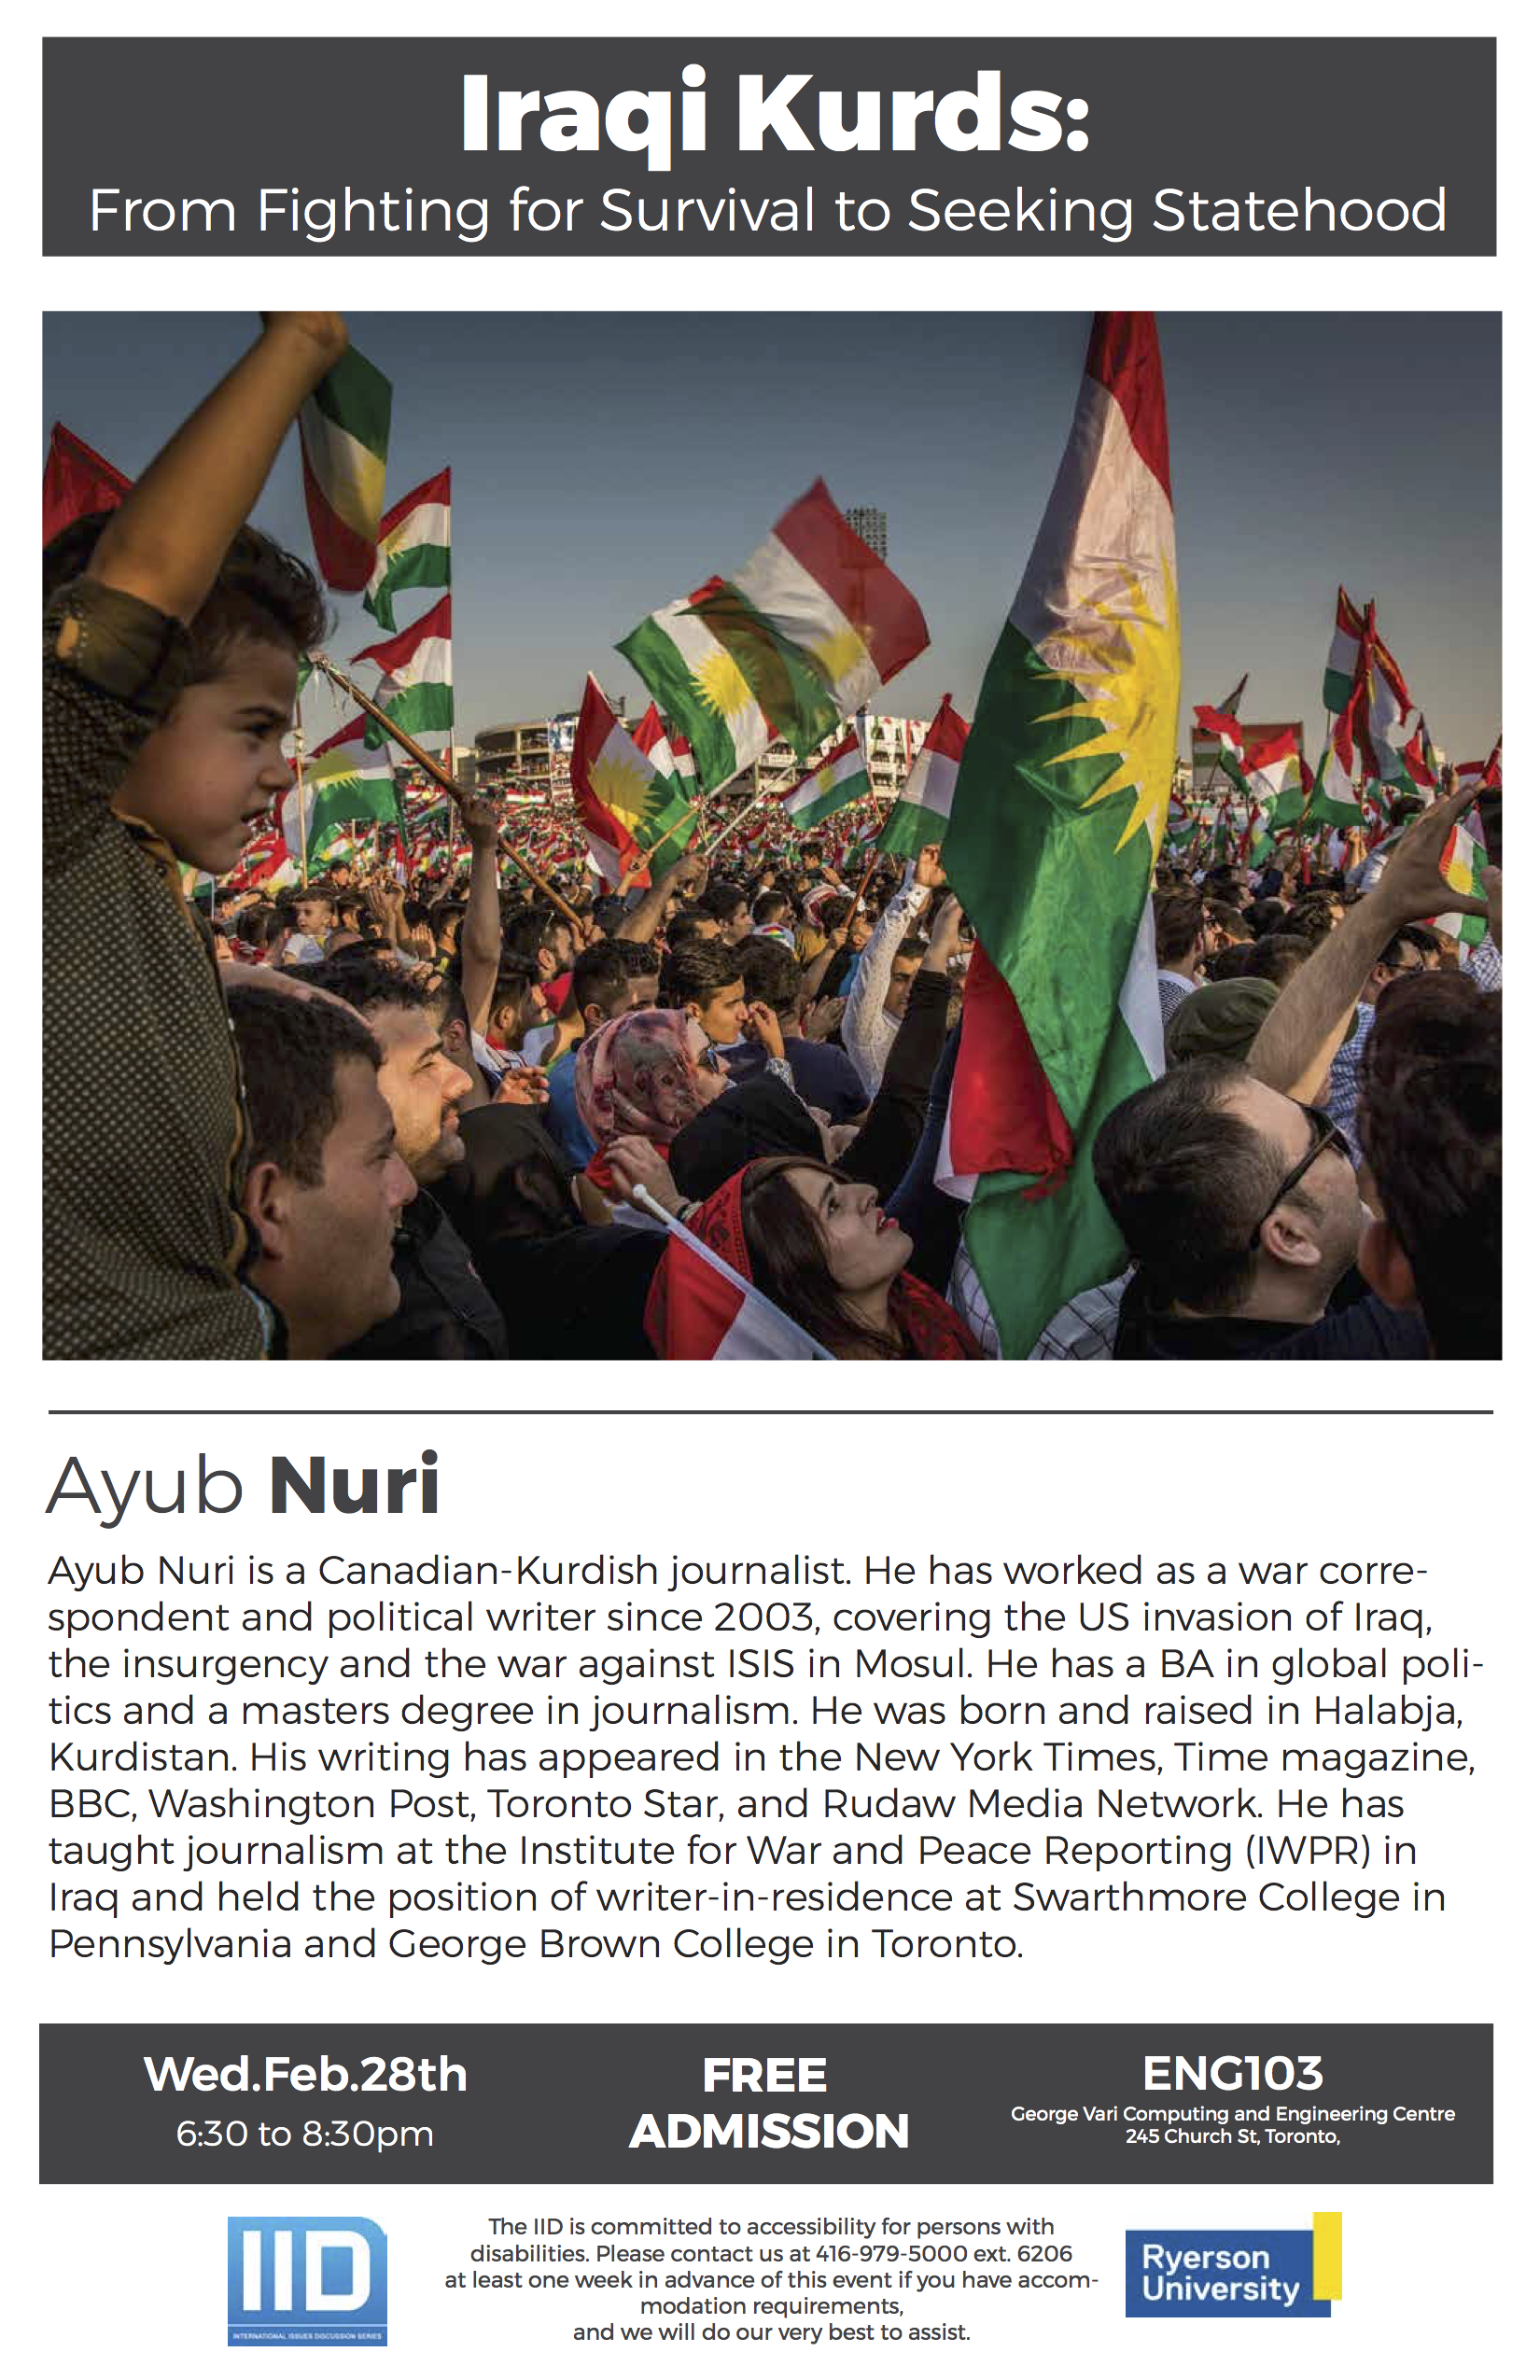 Iraqi Kurds: From Fighting for Survival to Seeking Statehood – Wednesday, February 28, 2018